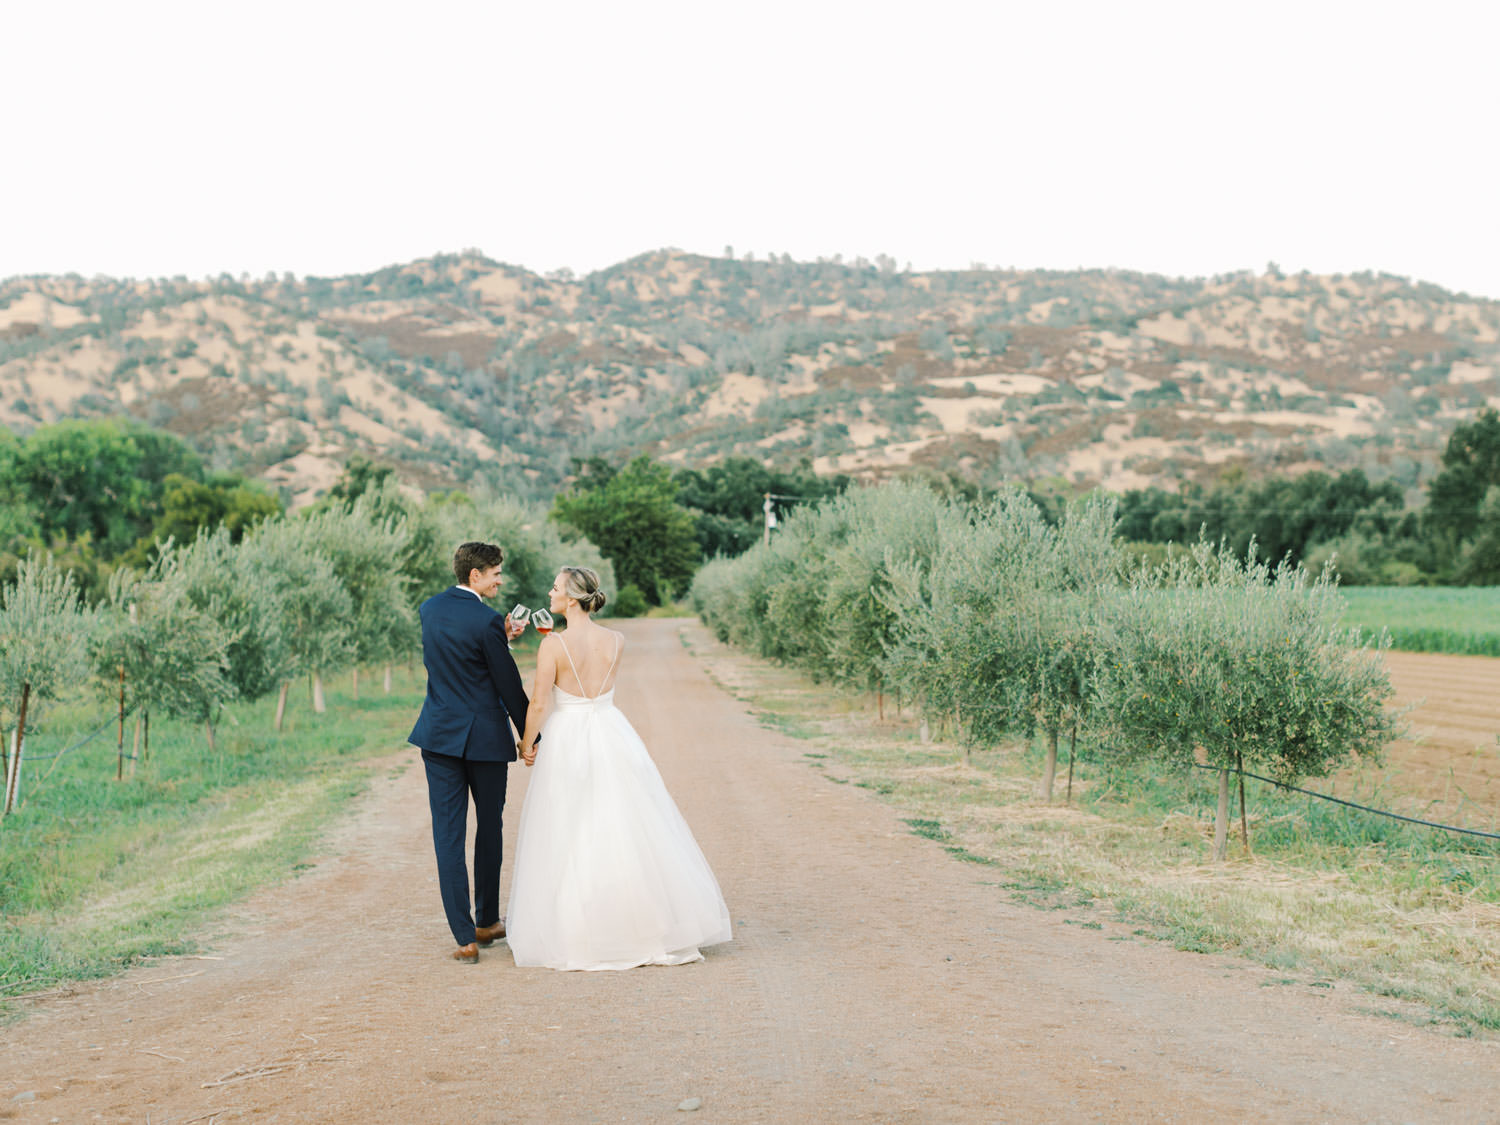 Bride and groom walking down a tree grove road with mountains in the background. Full Belly Farm Wedding on Martha Stewart Weddings by Cavin Elizabeth Photography